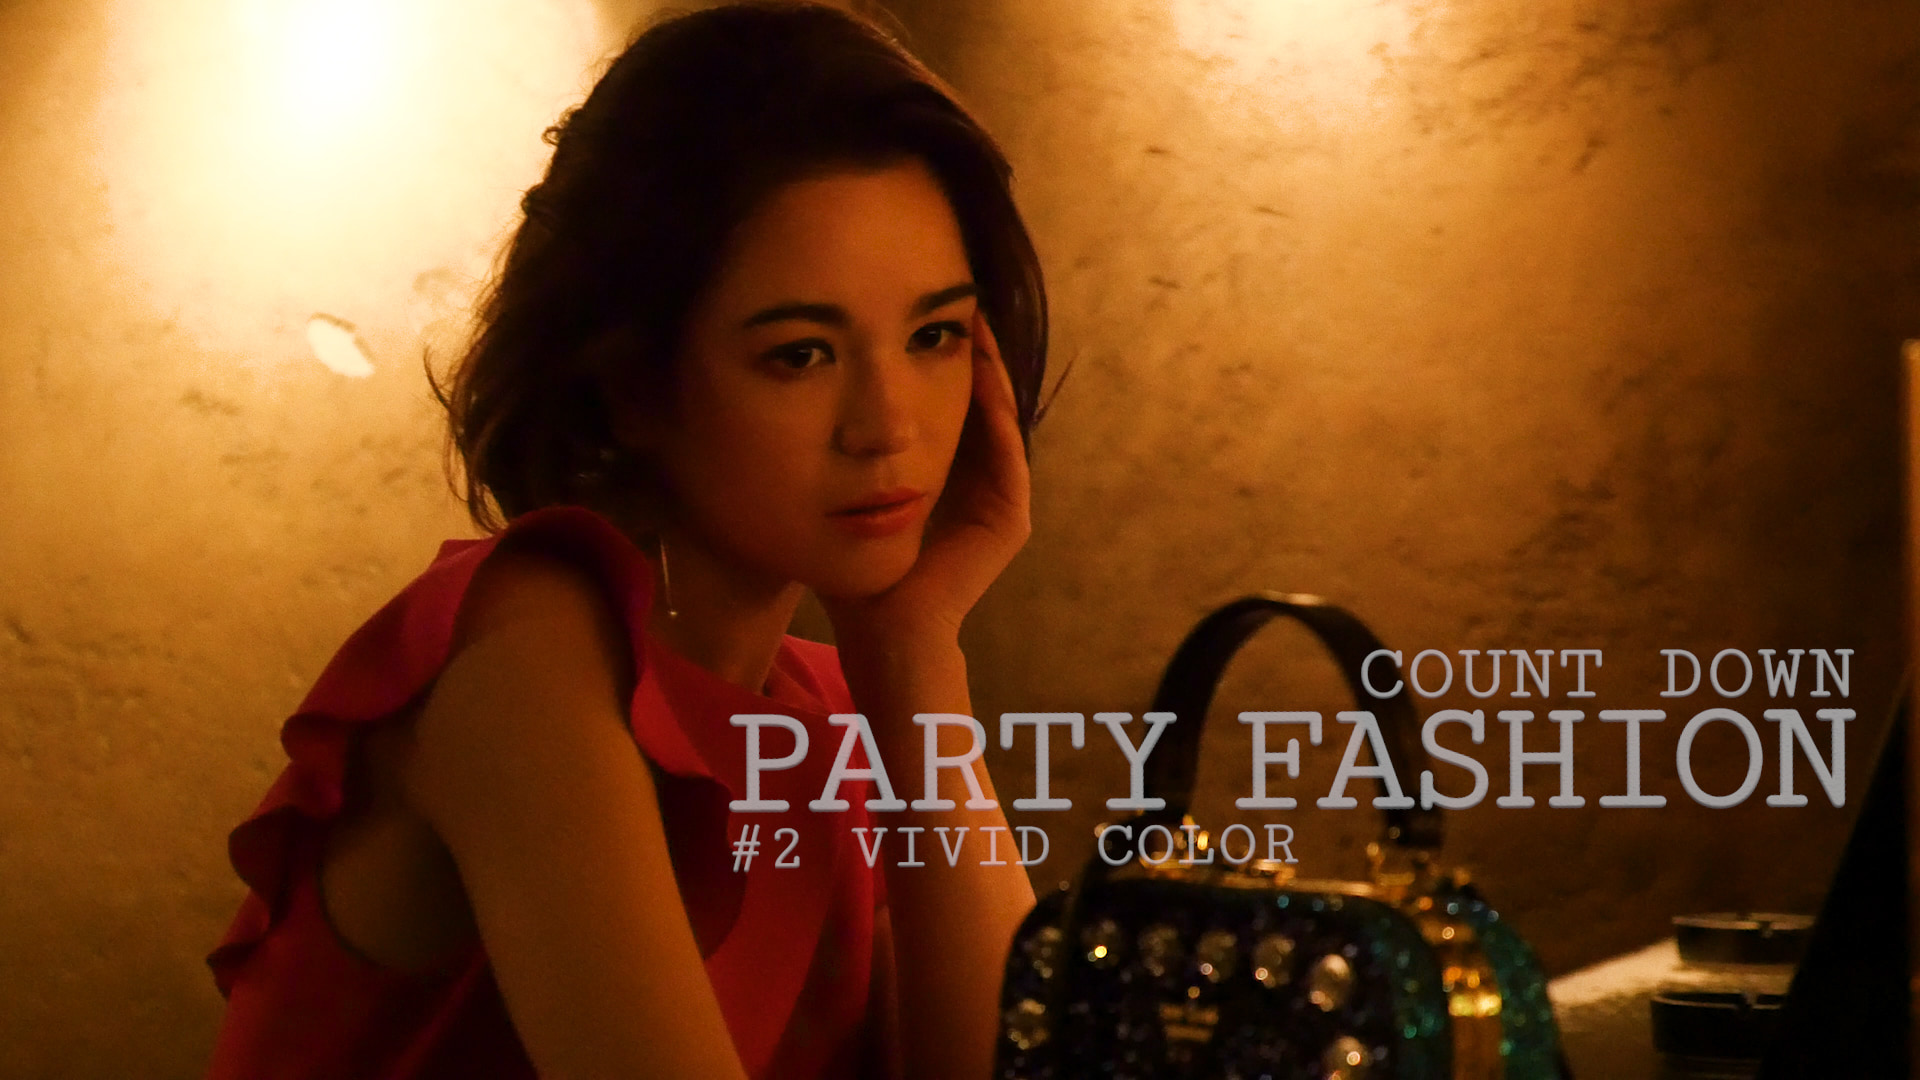 カウントダウン!PARTY FASHION〜#2 VIVID COLOR〜